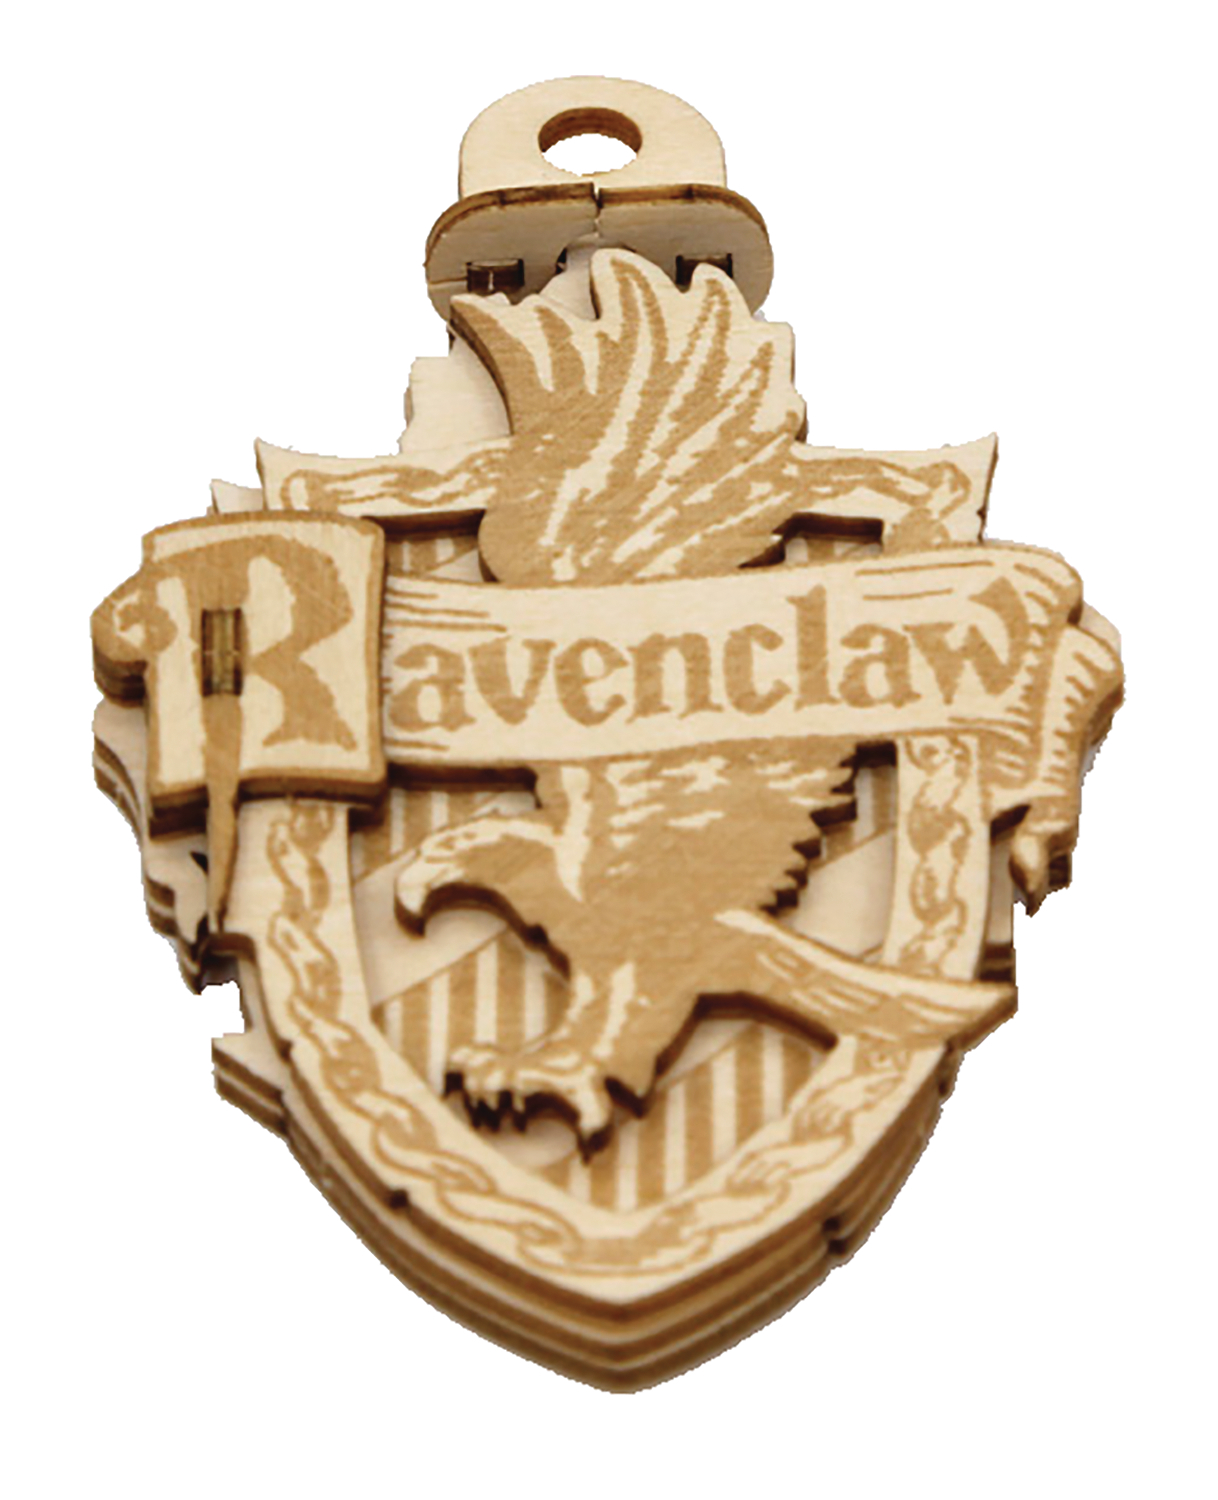 INCREDIBUILDS EMBLEMATICS HP RAVENCLAW